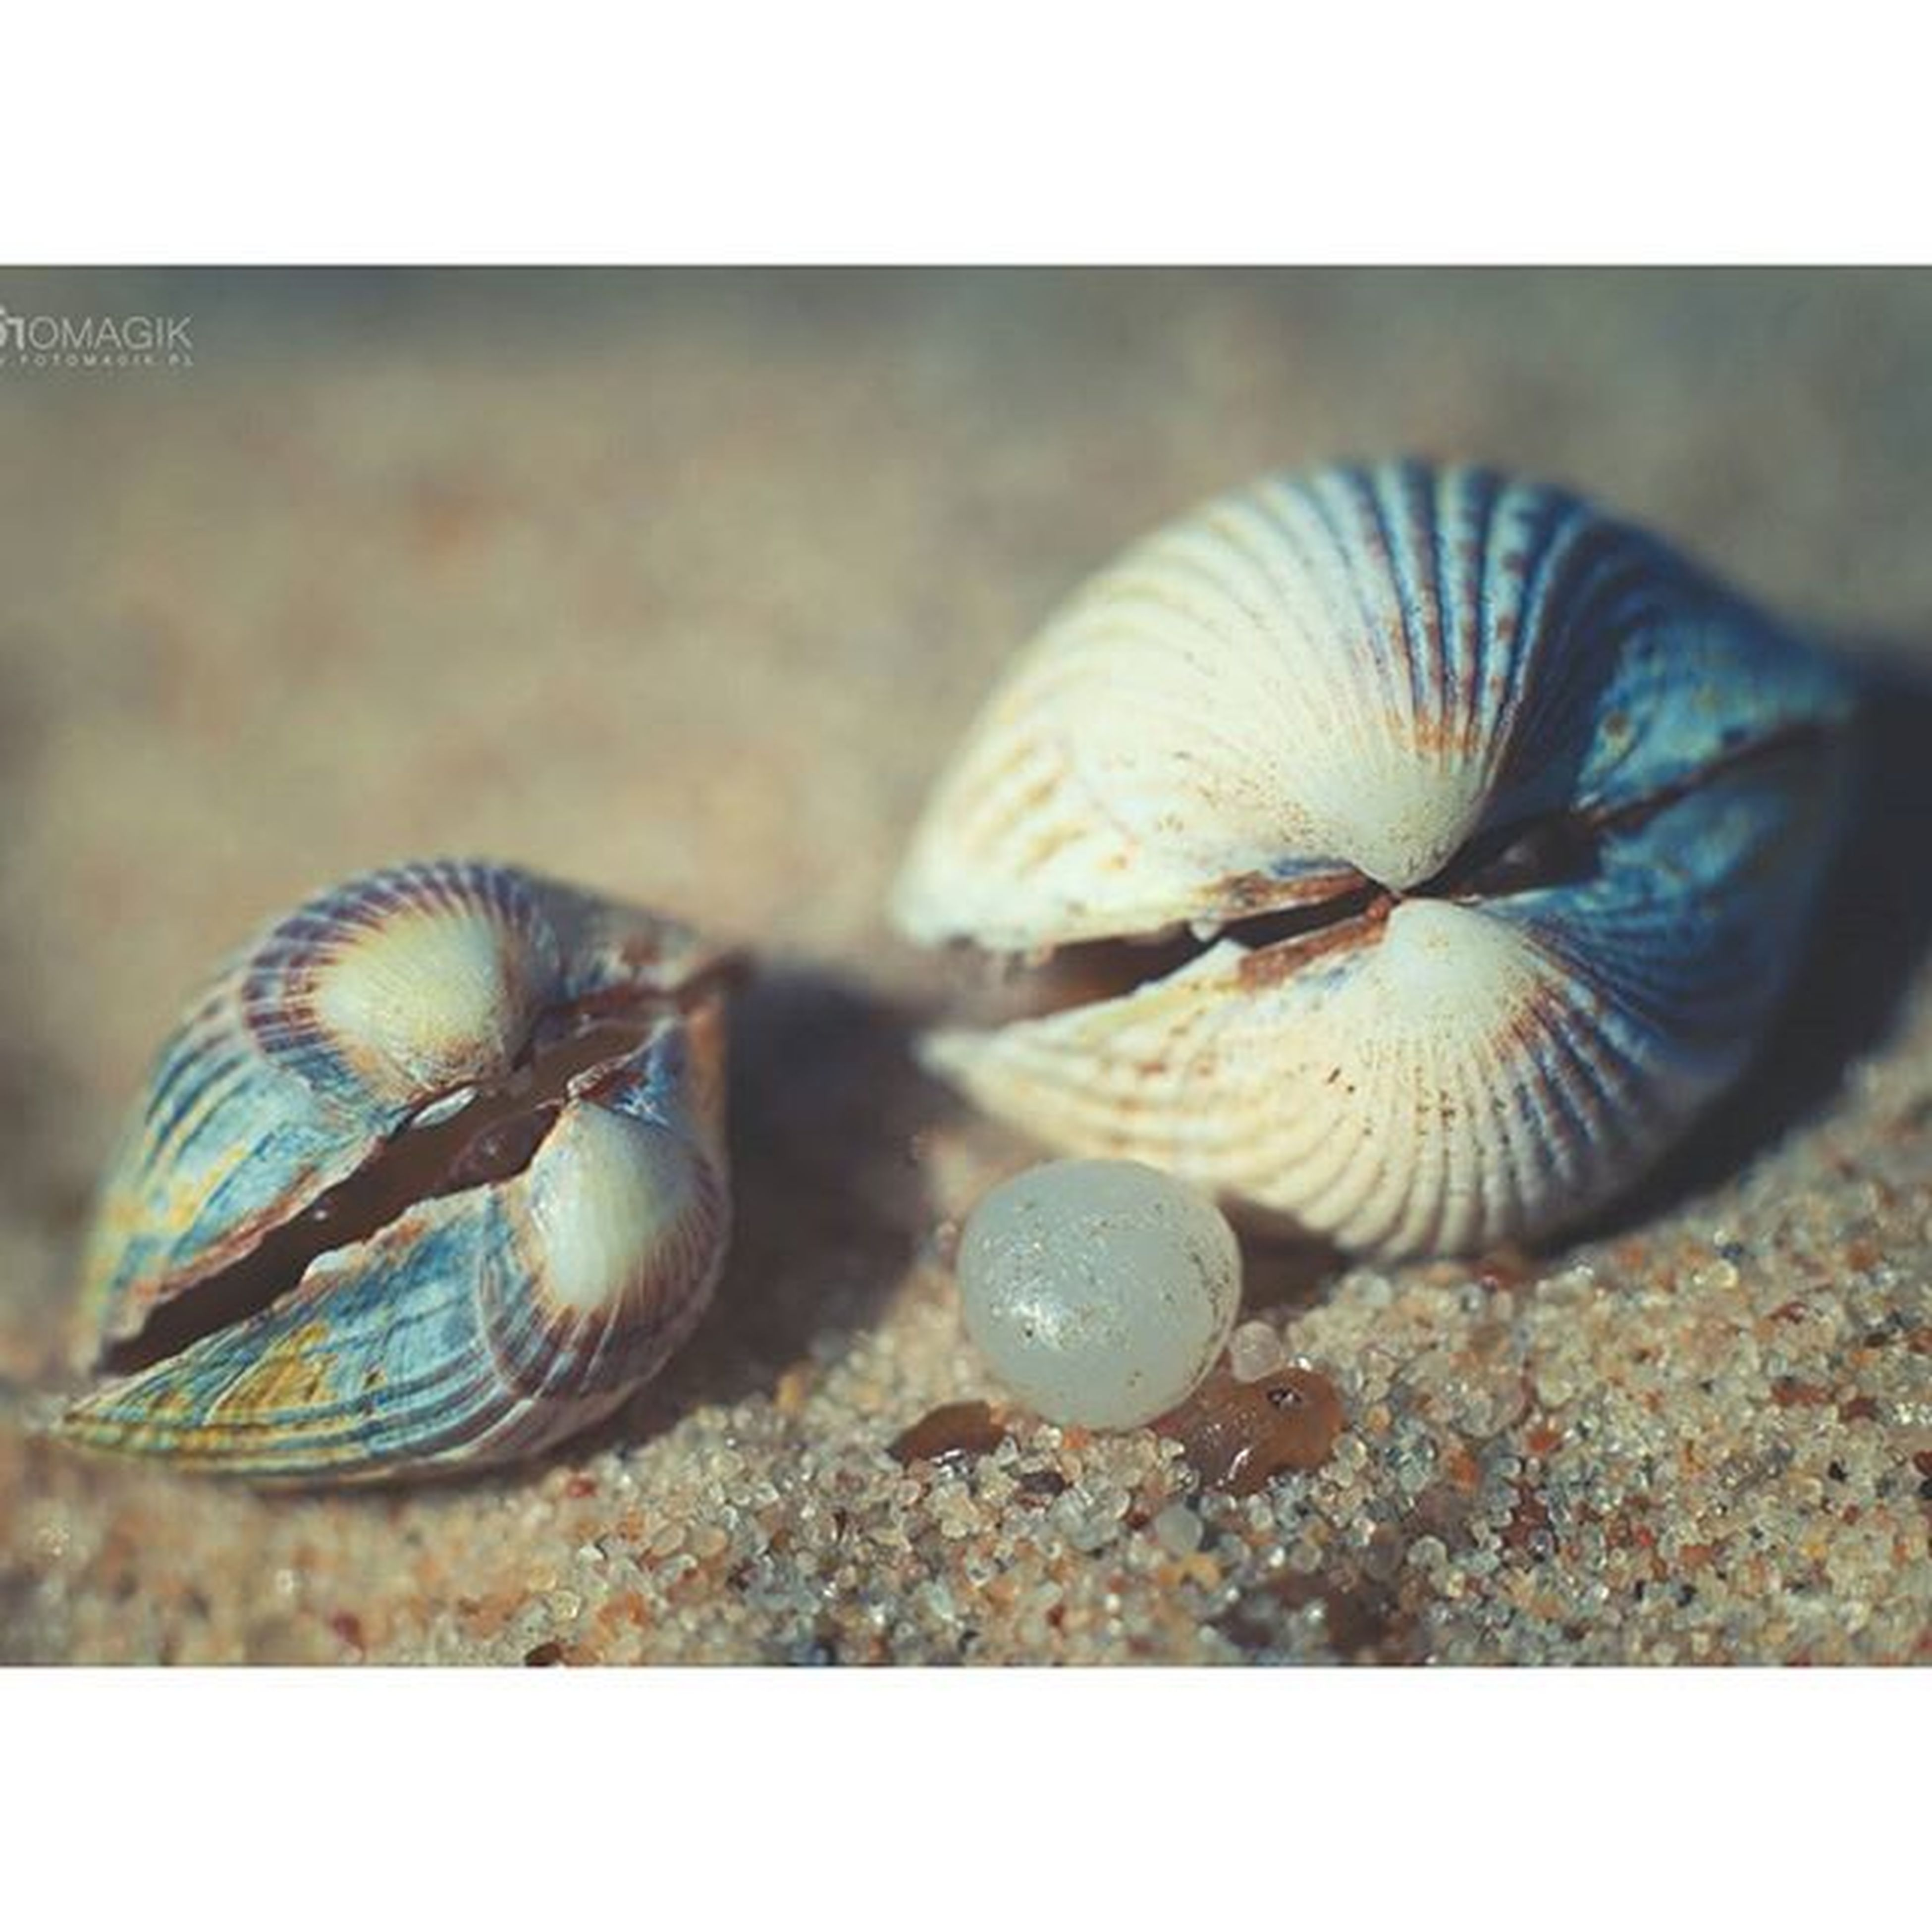 animal themes, animals in the wild, wildlife, one animal, close-up, animal shell, transfer print, natural pattern, insect, auto post production filter, nature, shell, focus on foreground, snail, zoology, day, outdoors, seashell, no people, selective focus